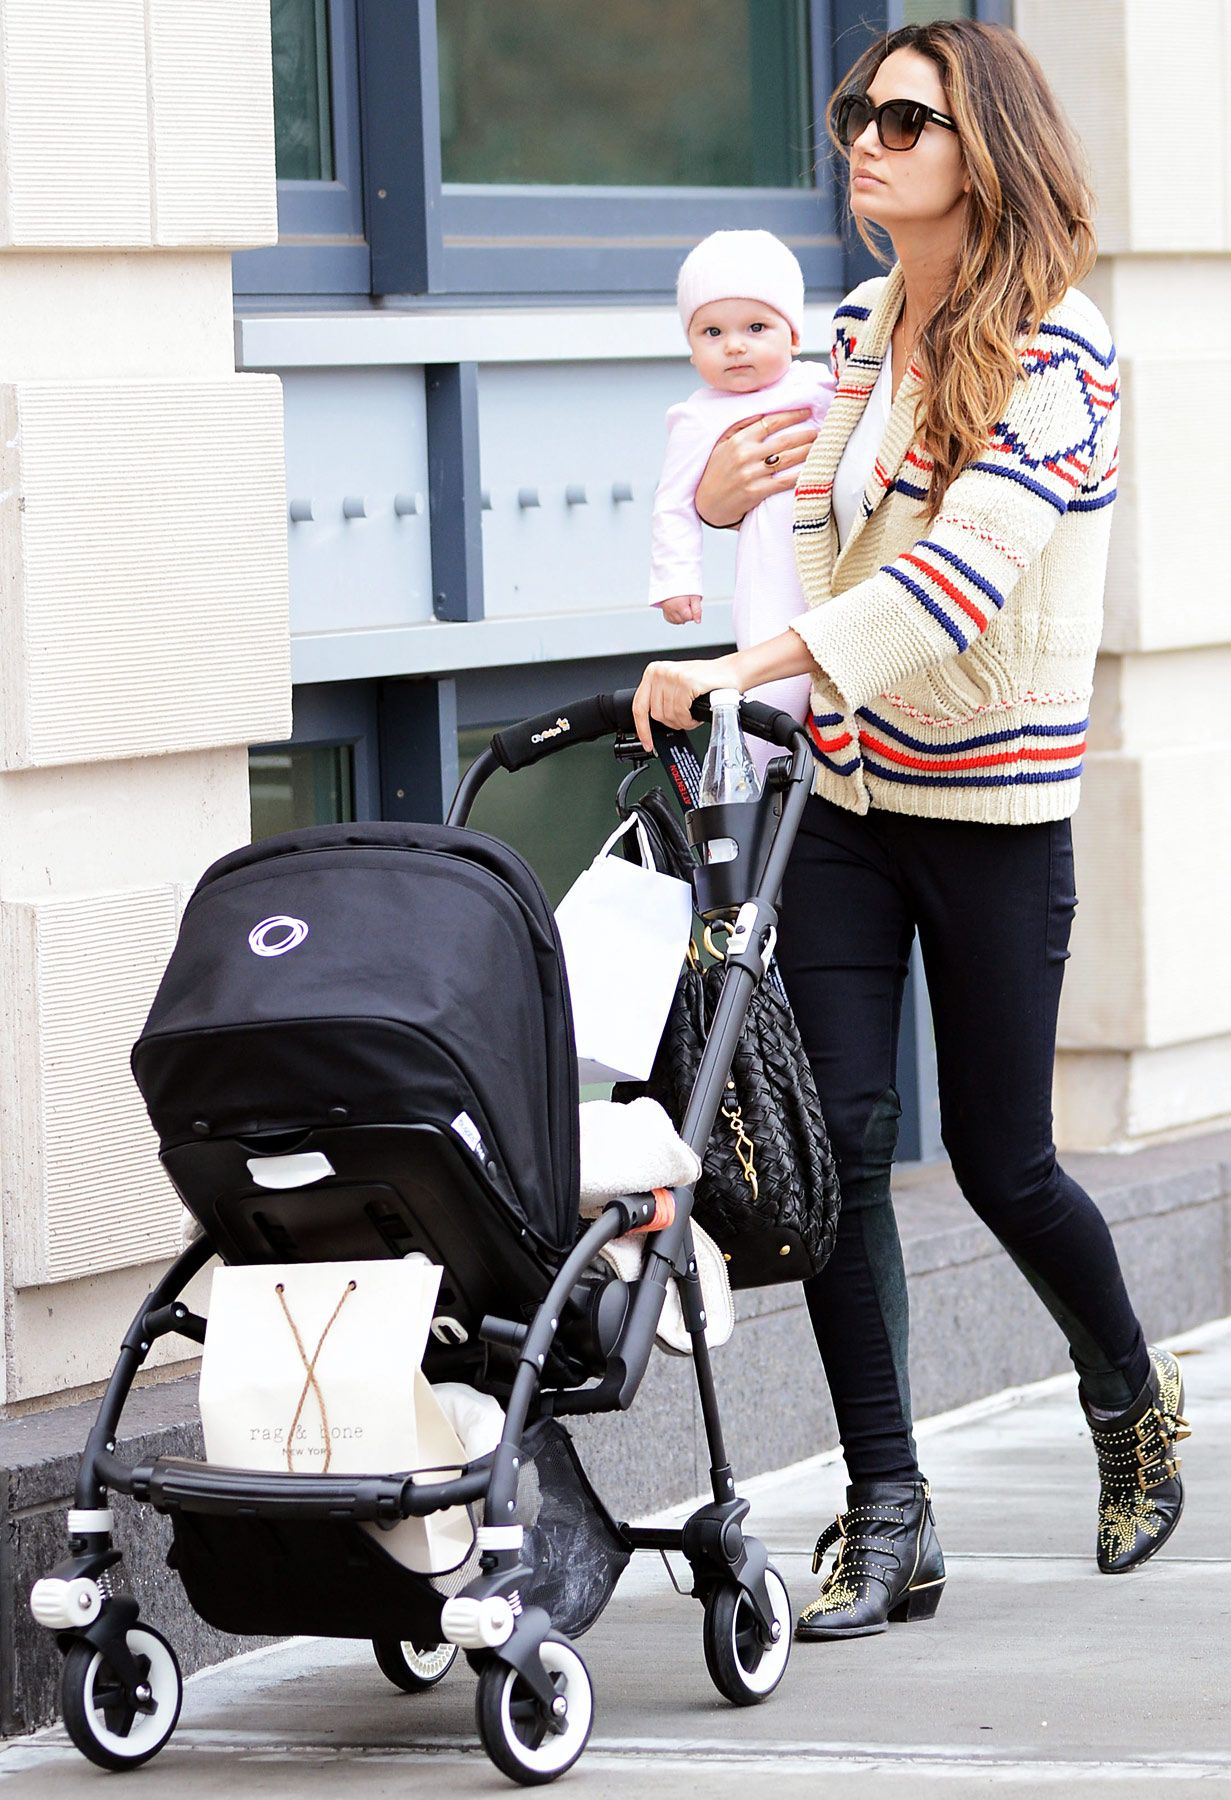 Carry baby cause she s tired of the stroller